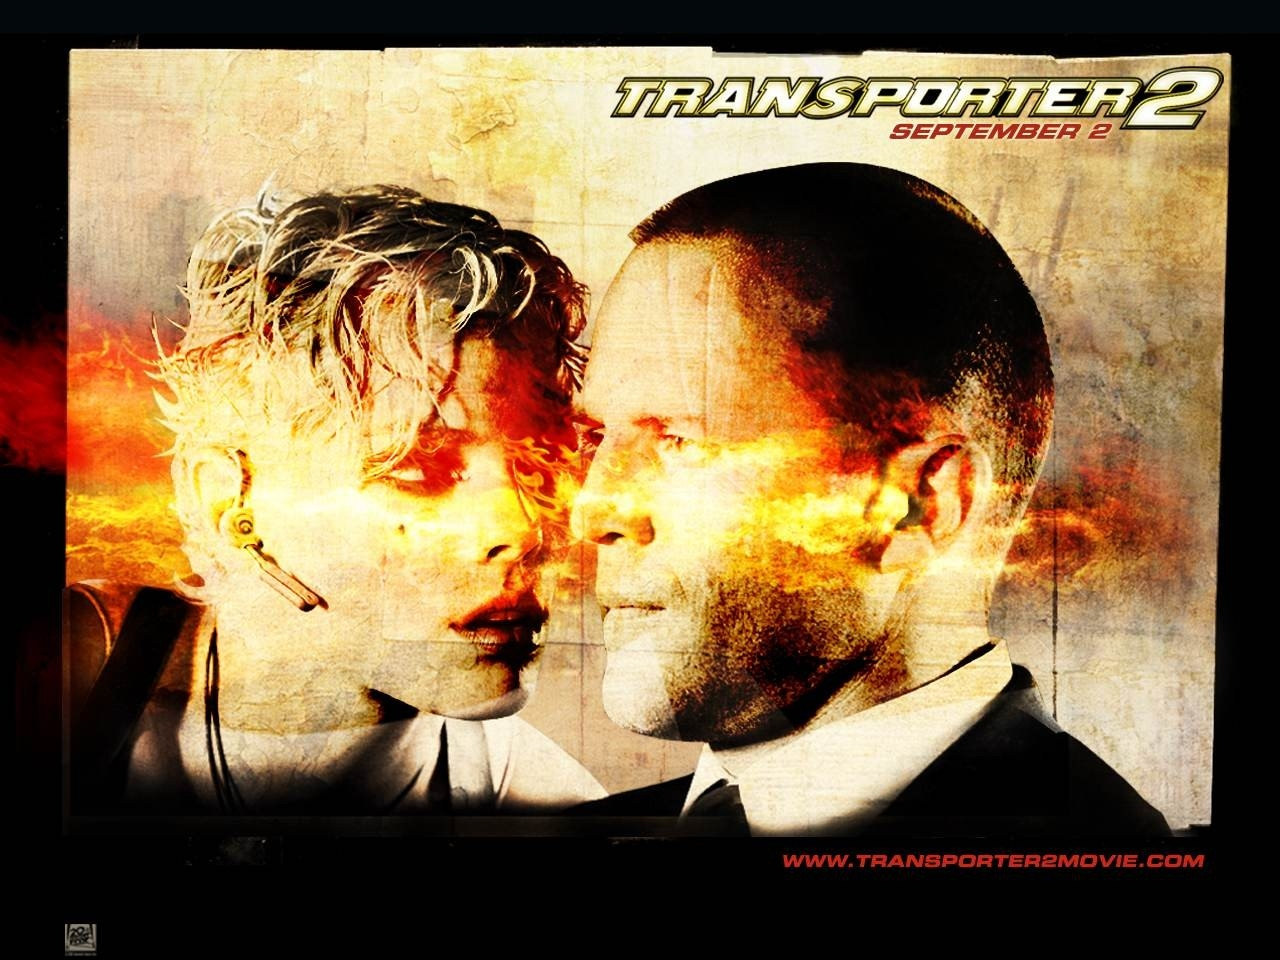 Wallpaper del film Transporter: extreme